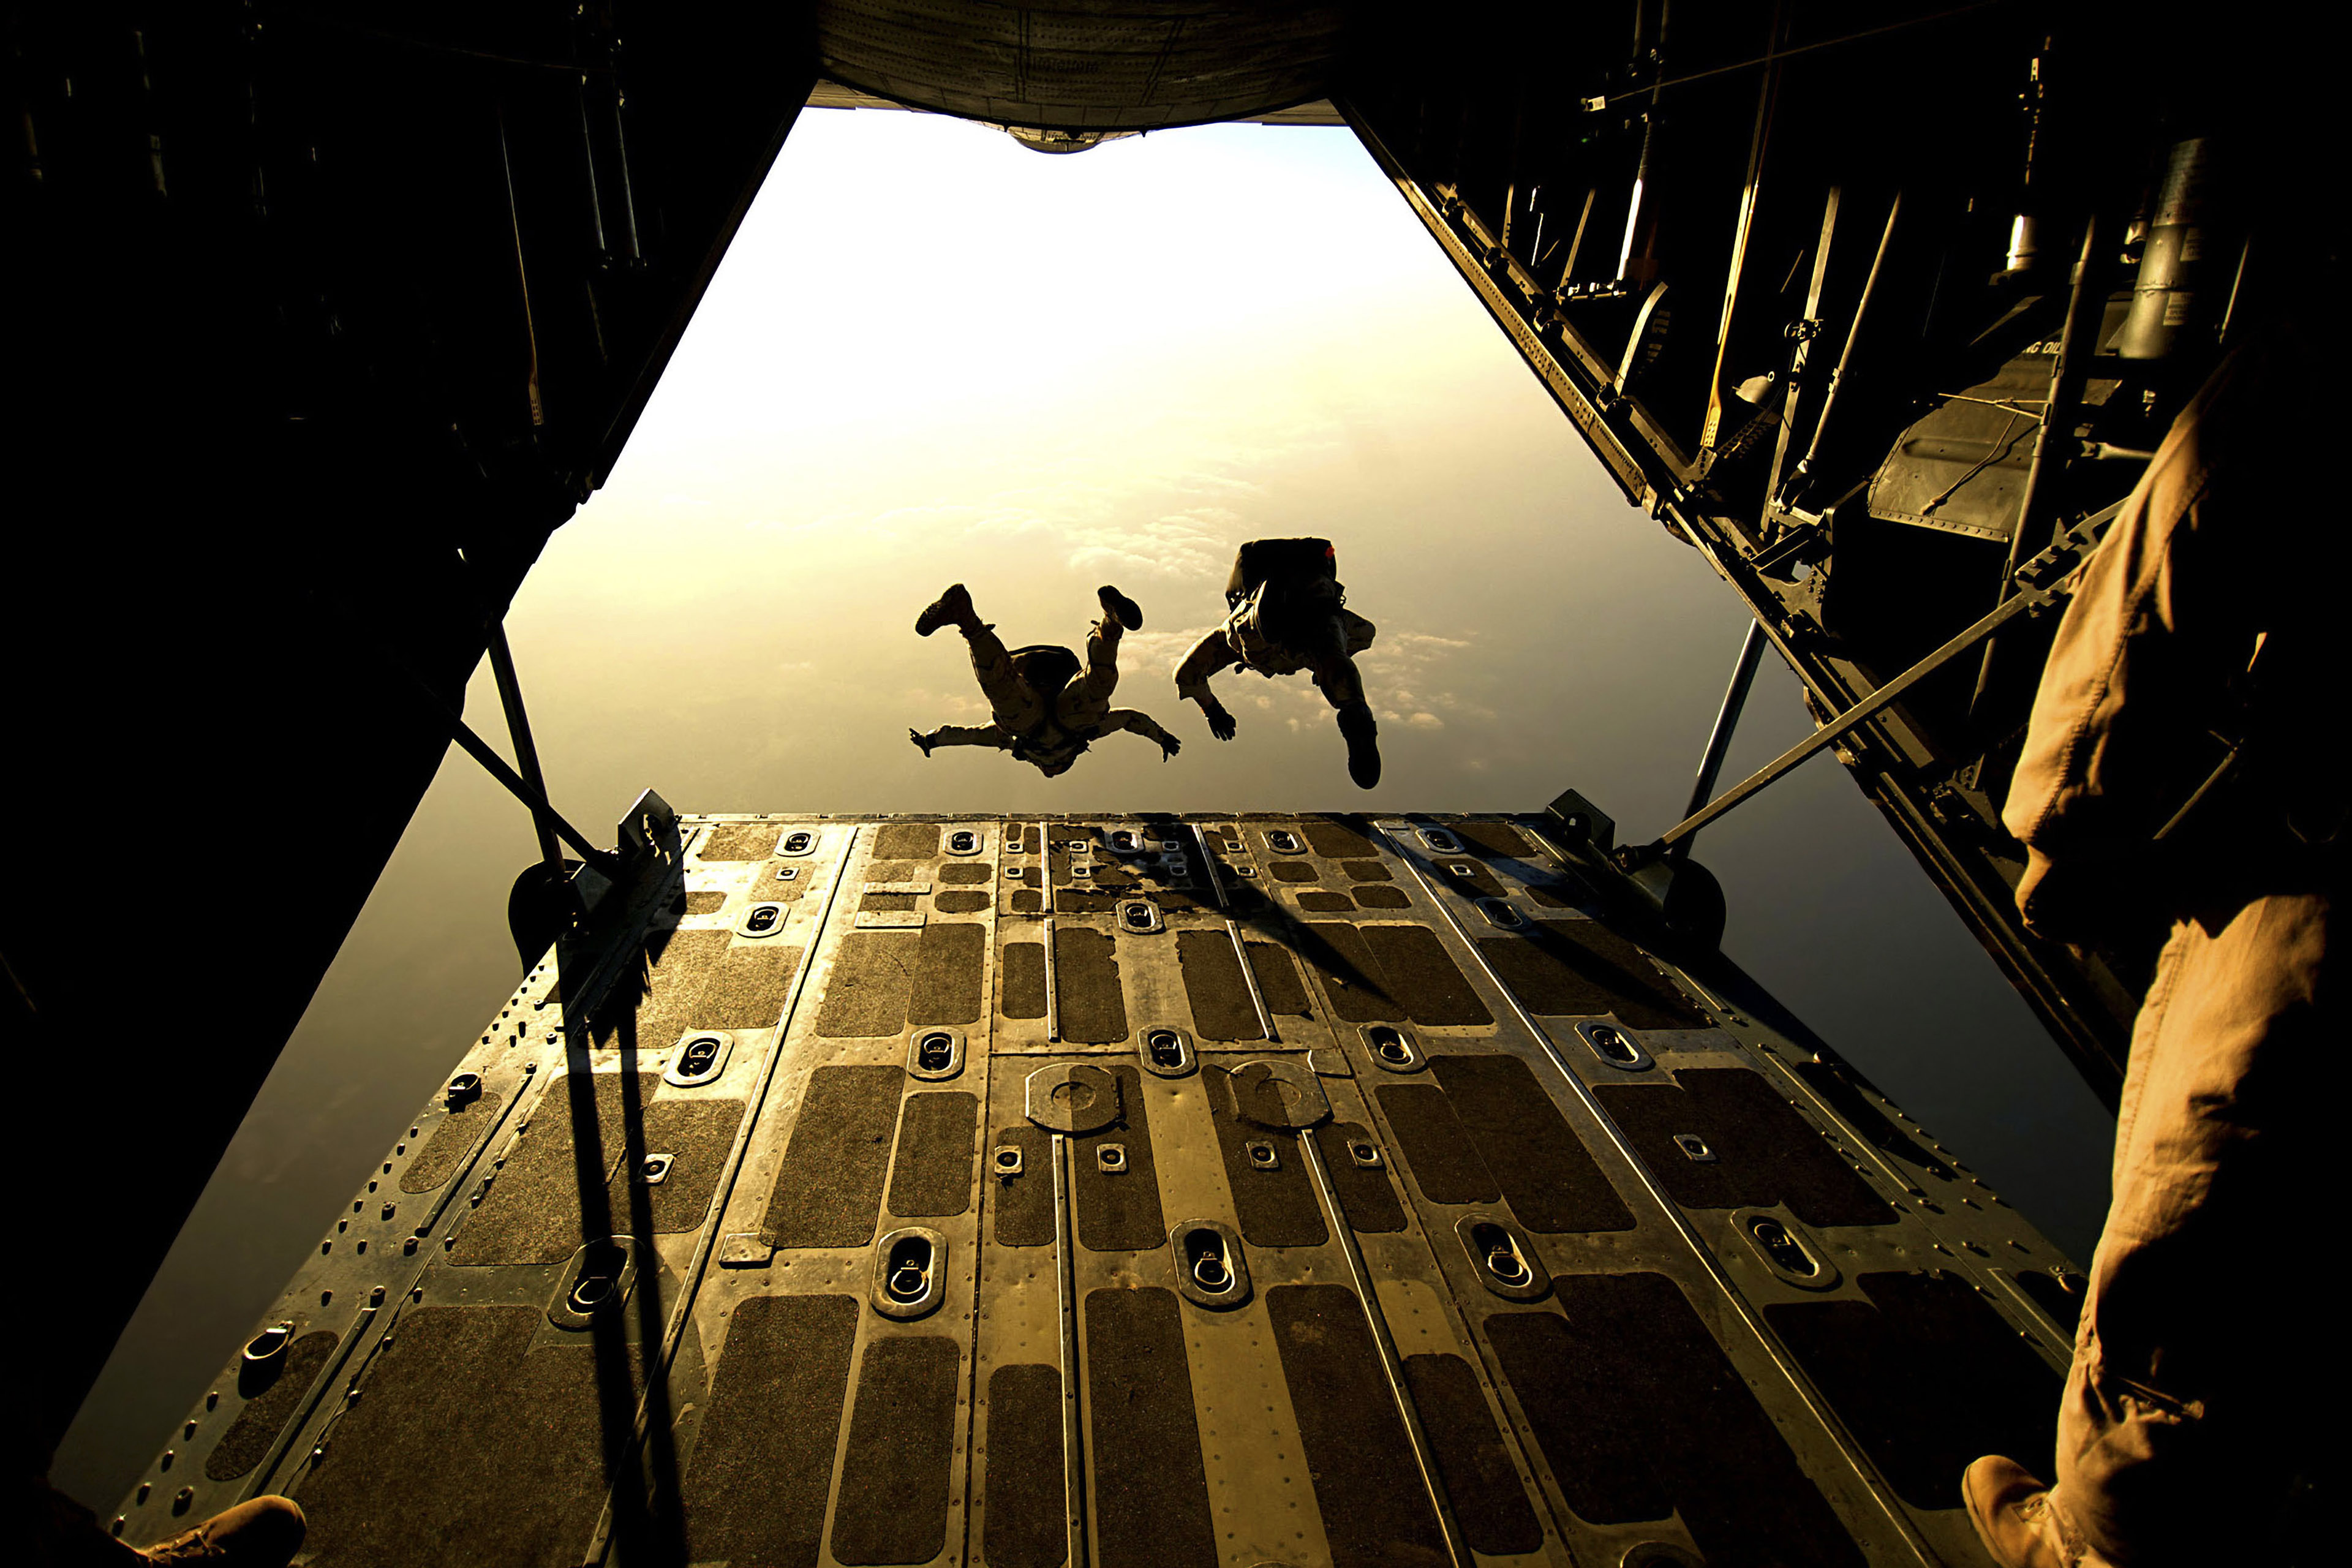 Military skydiving